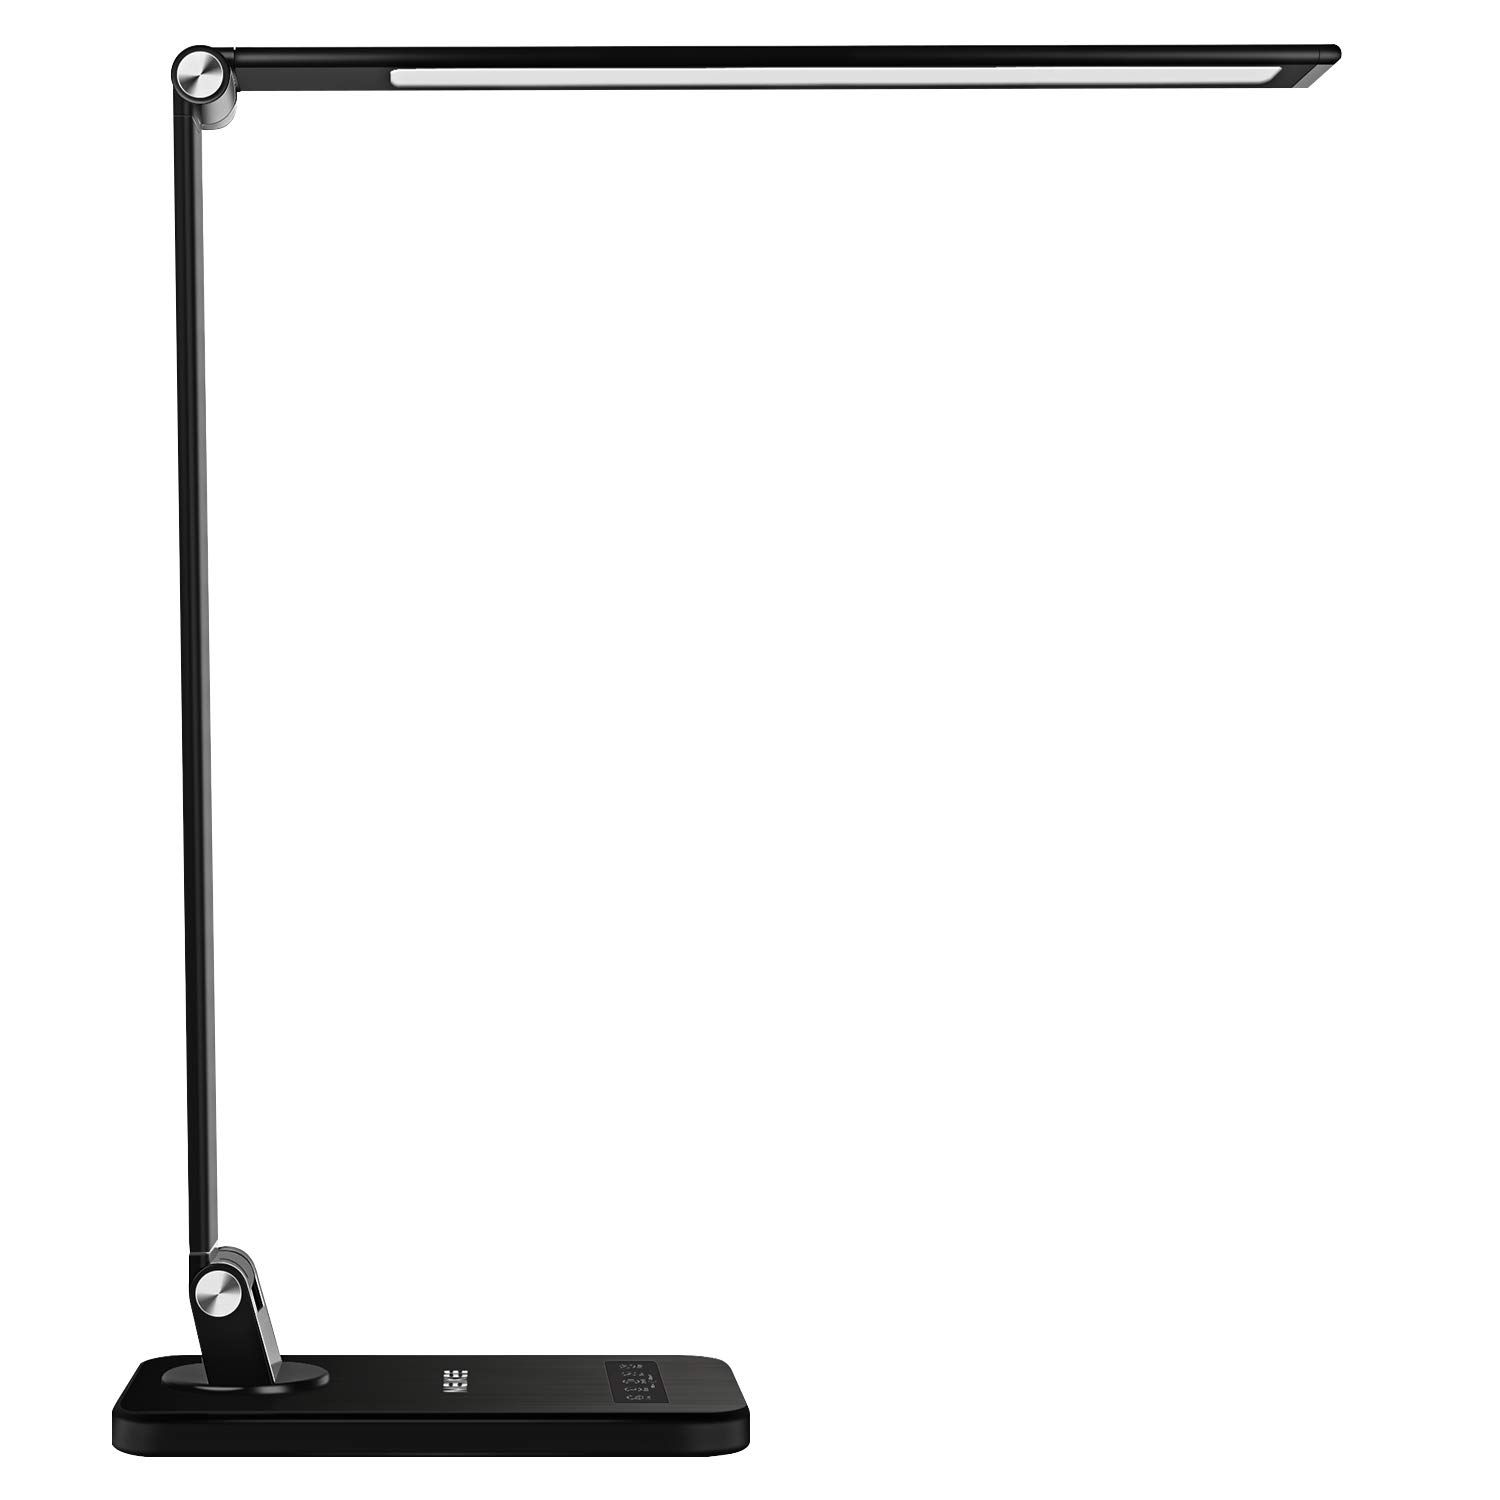 MEIKEE LED Desk Lamp,Aluminum Dimmable Table Lamp,5 Lighting Models with 8 Brightness Levels,Touch Control and Memory Function,30min/60min Auto Timer,5V/1A USB Charging Port,12W,Black